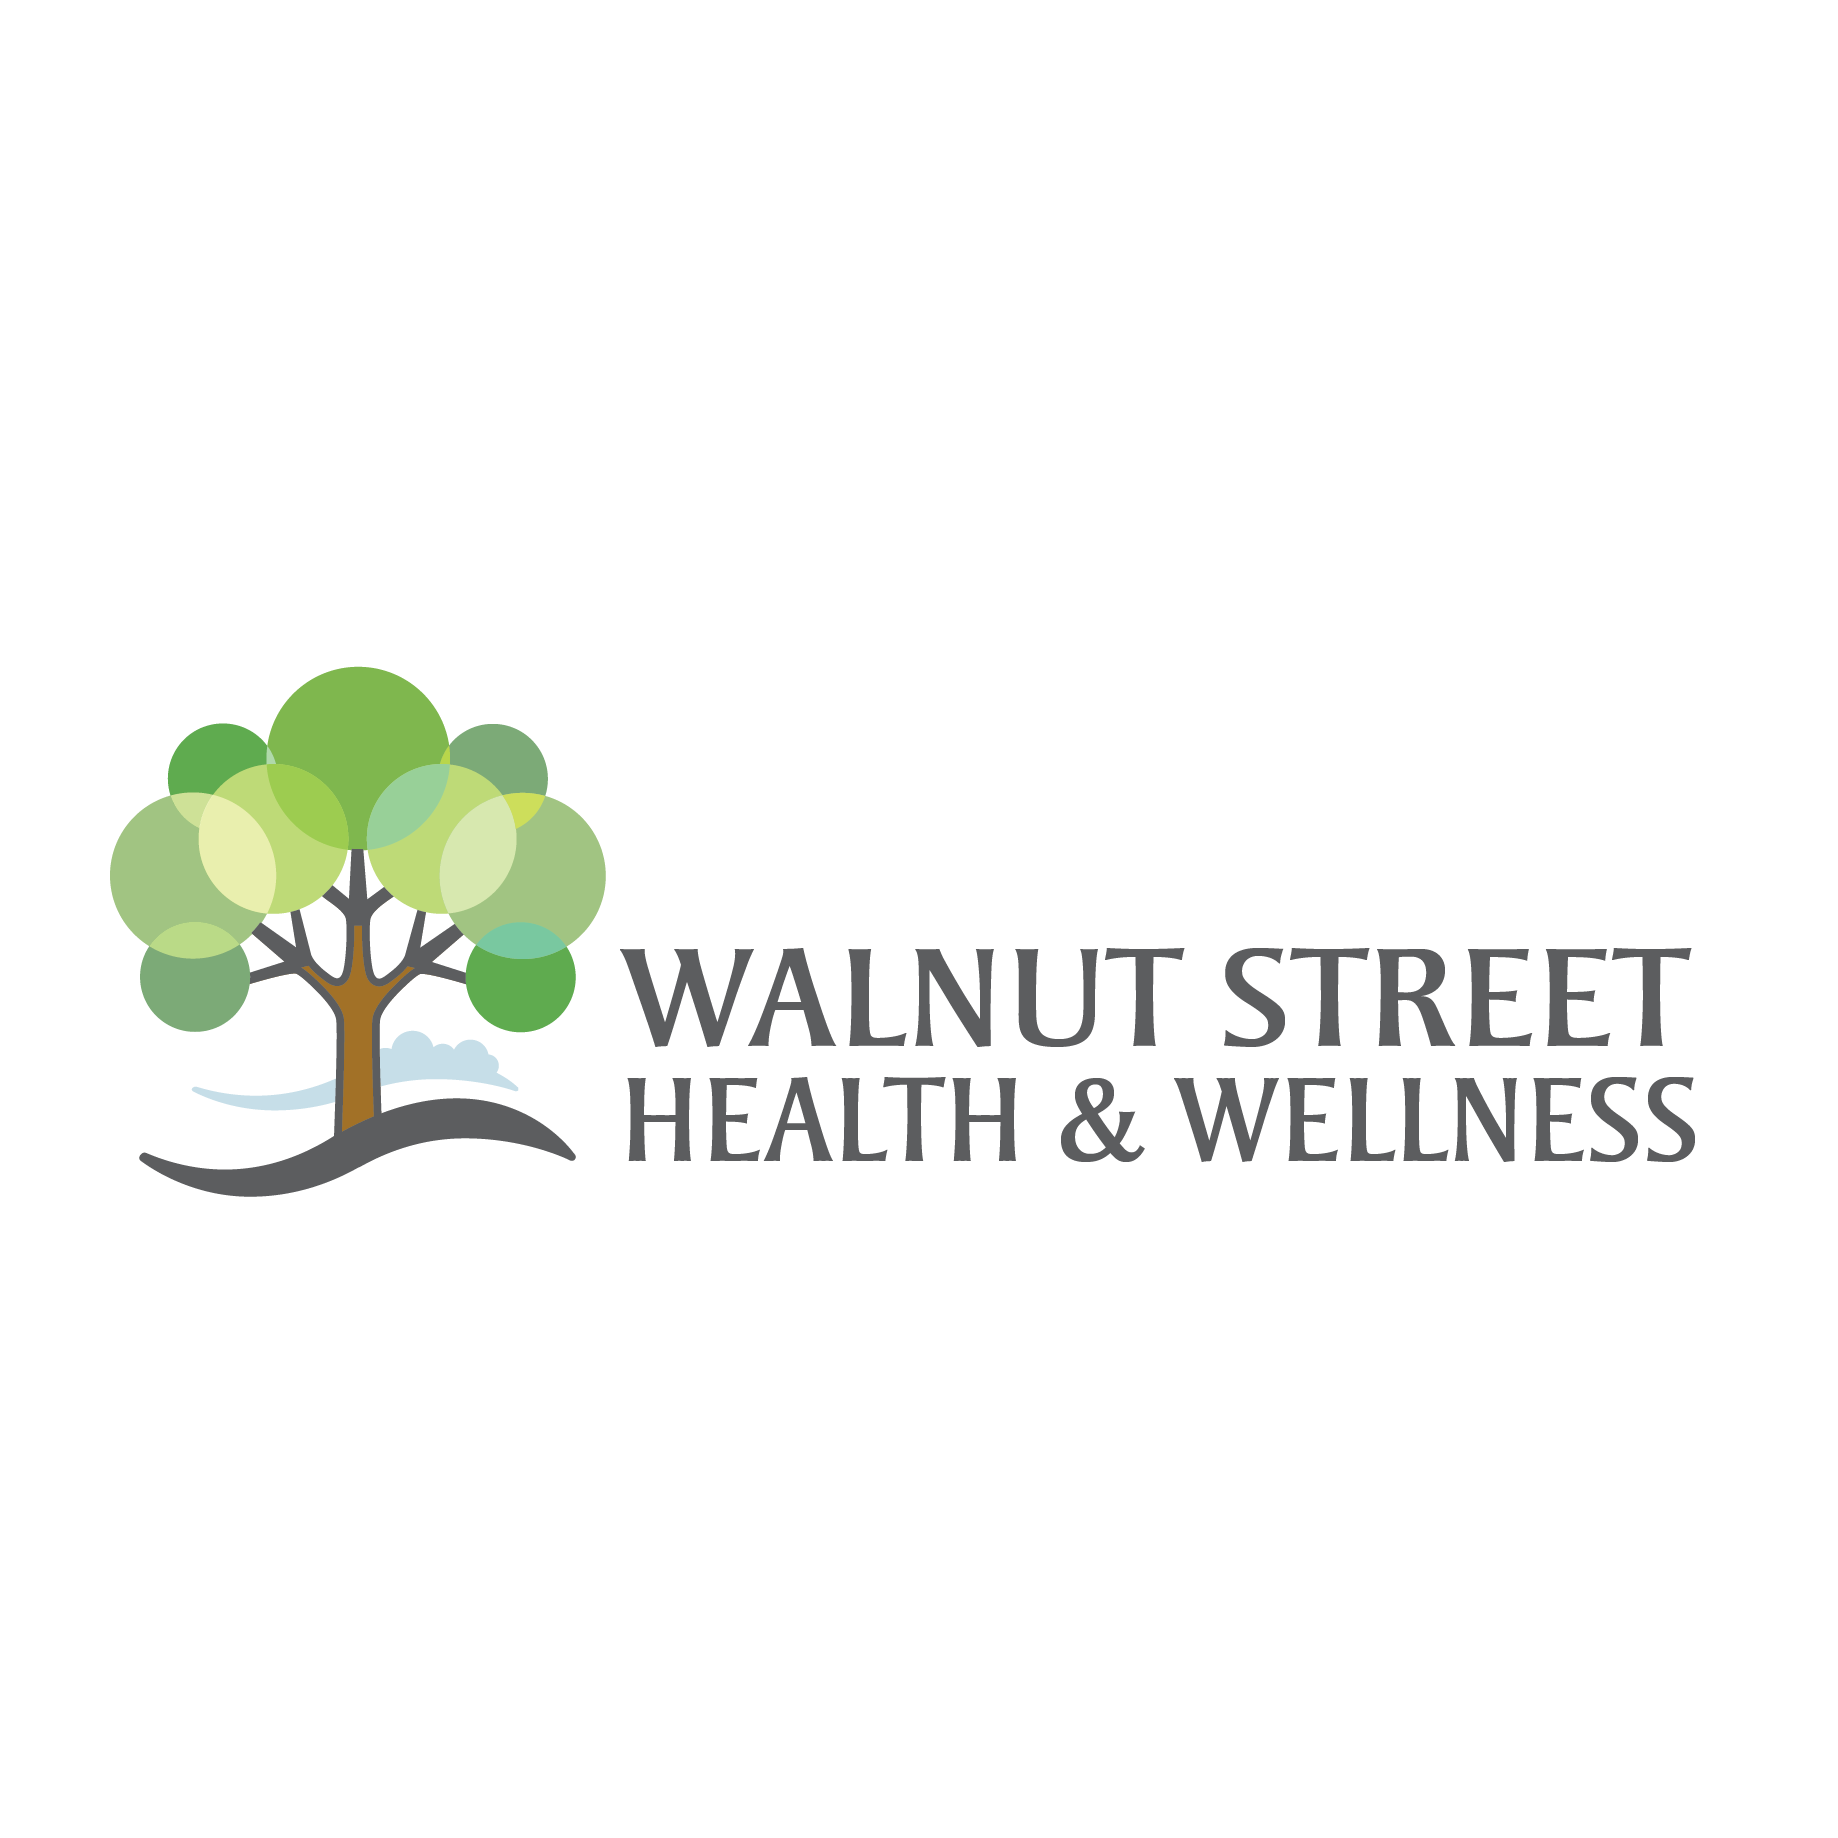 Walnut Street Health & Wellness Logo